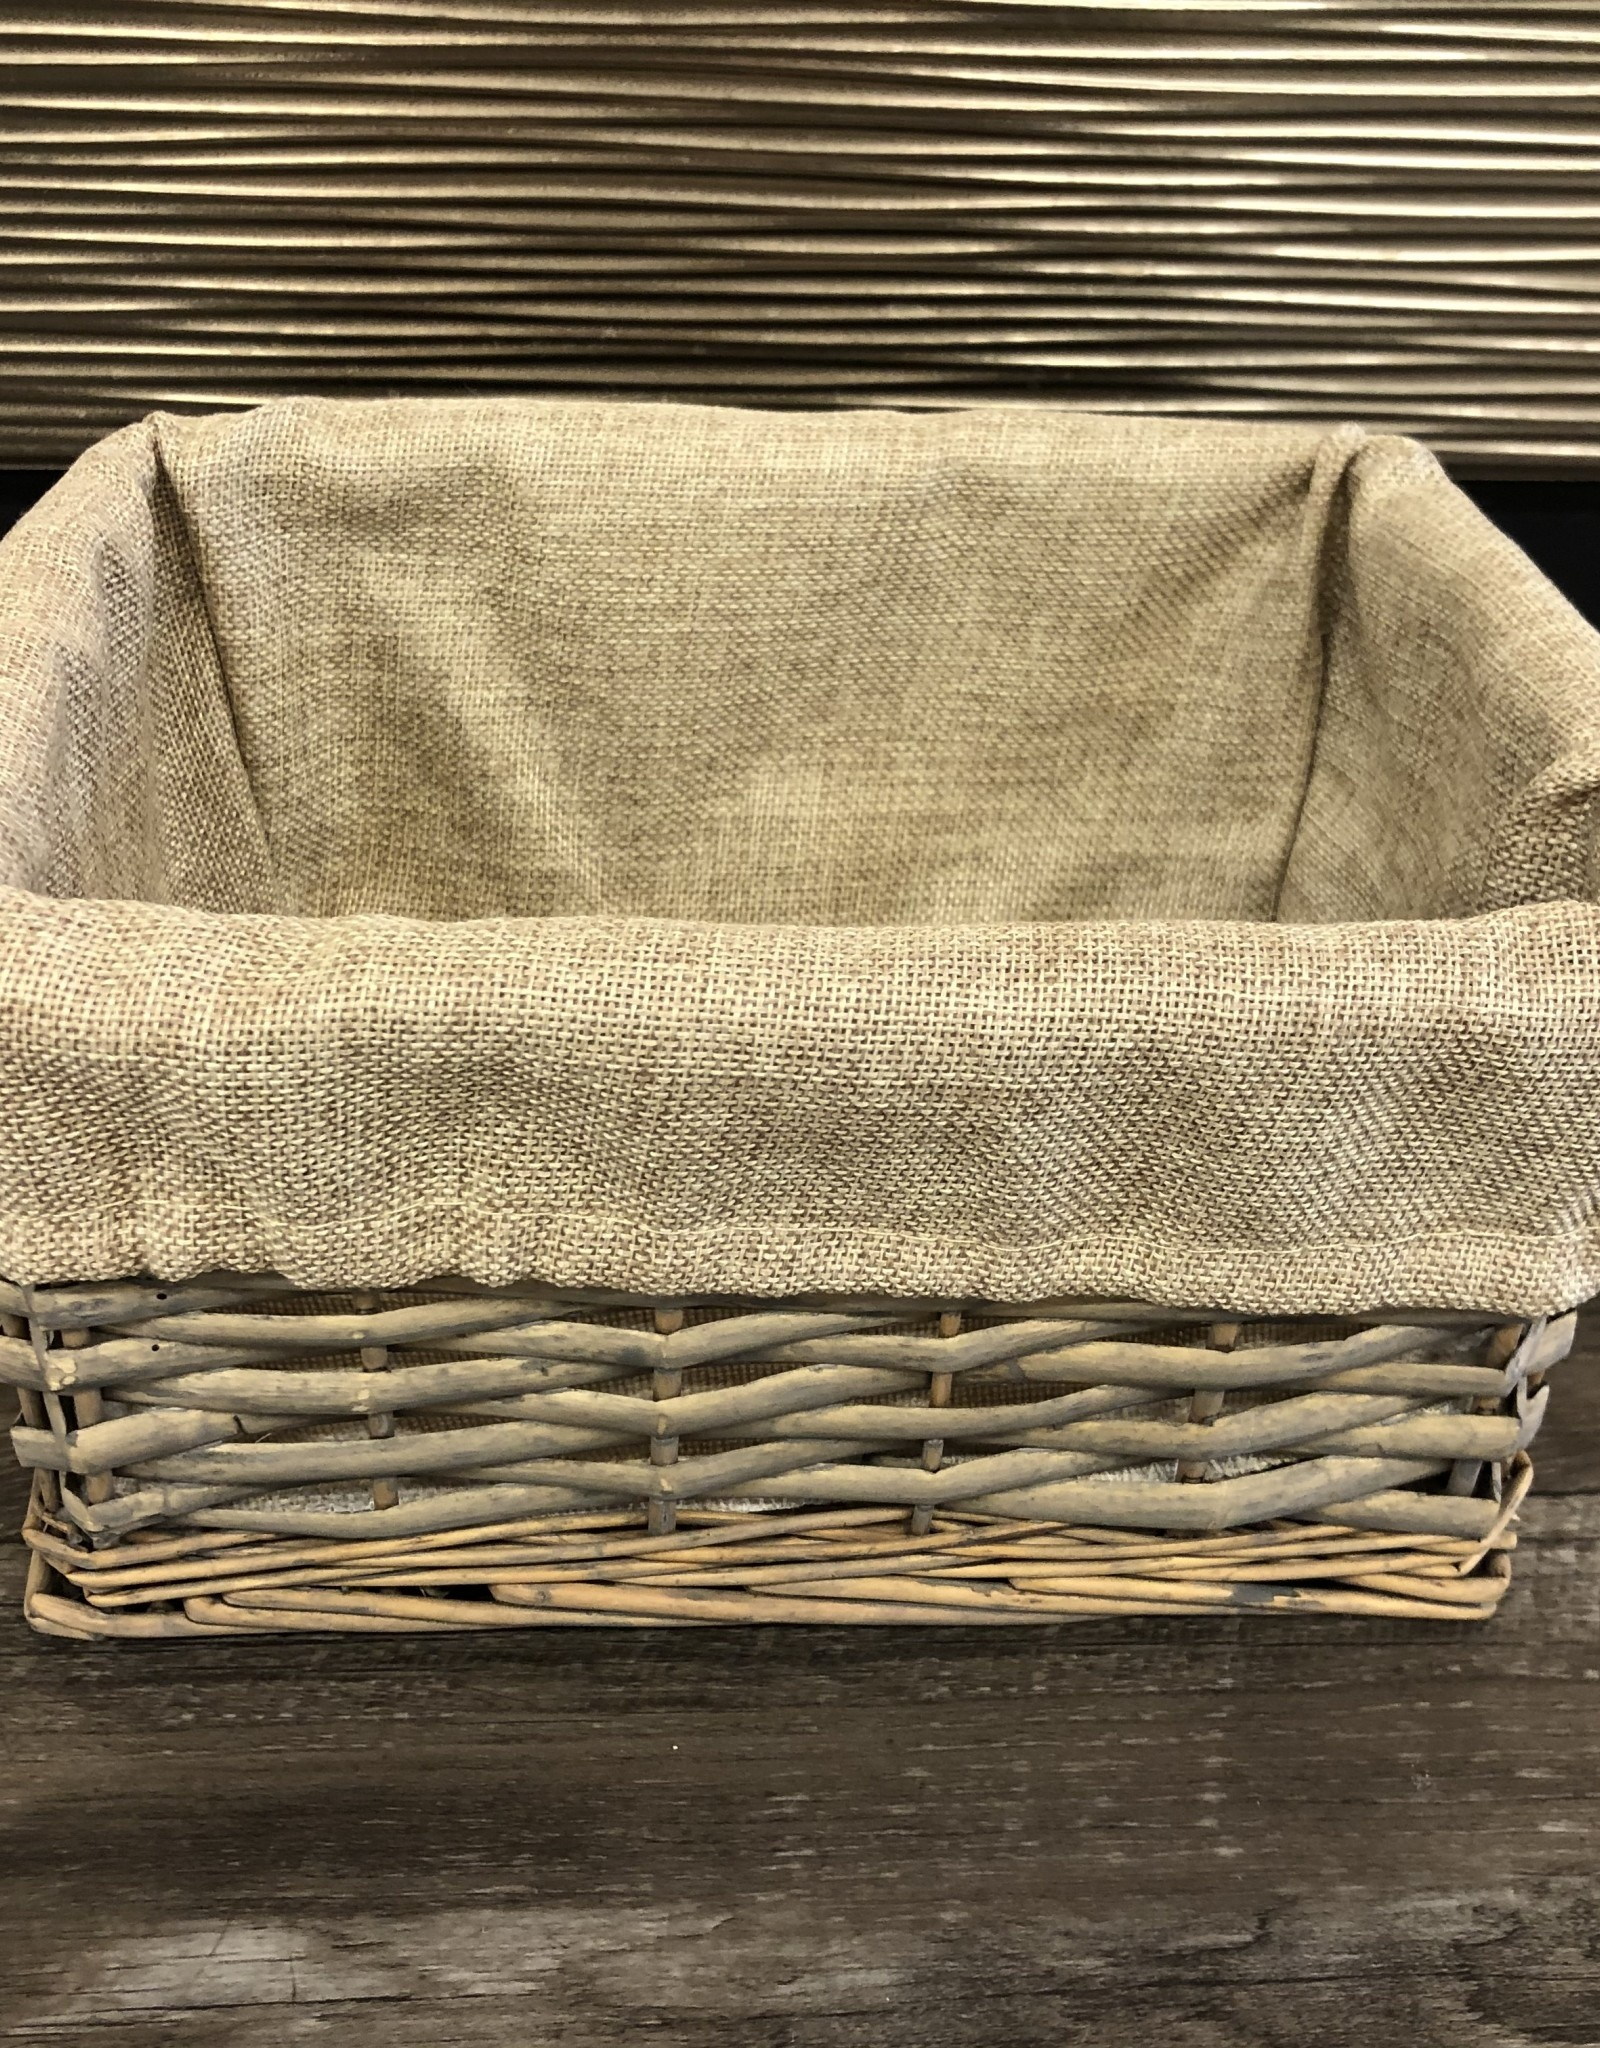 Cathay Basket Cathay Woven Liner